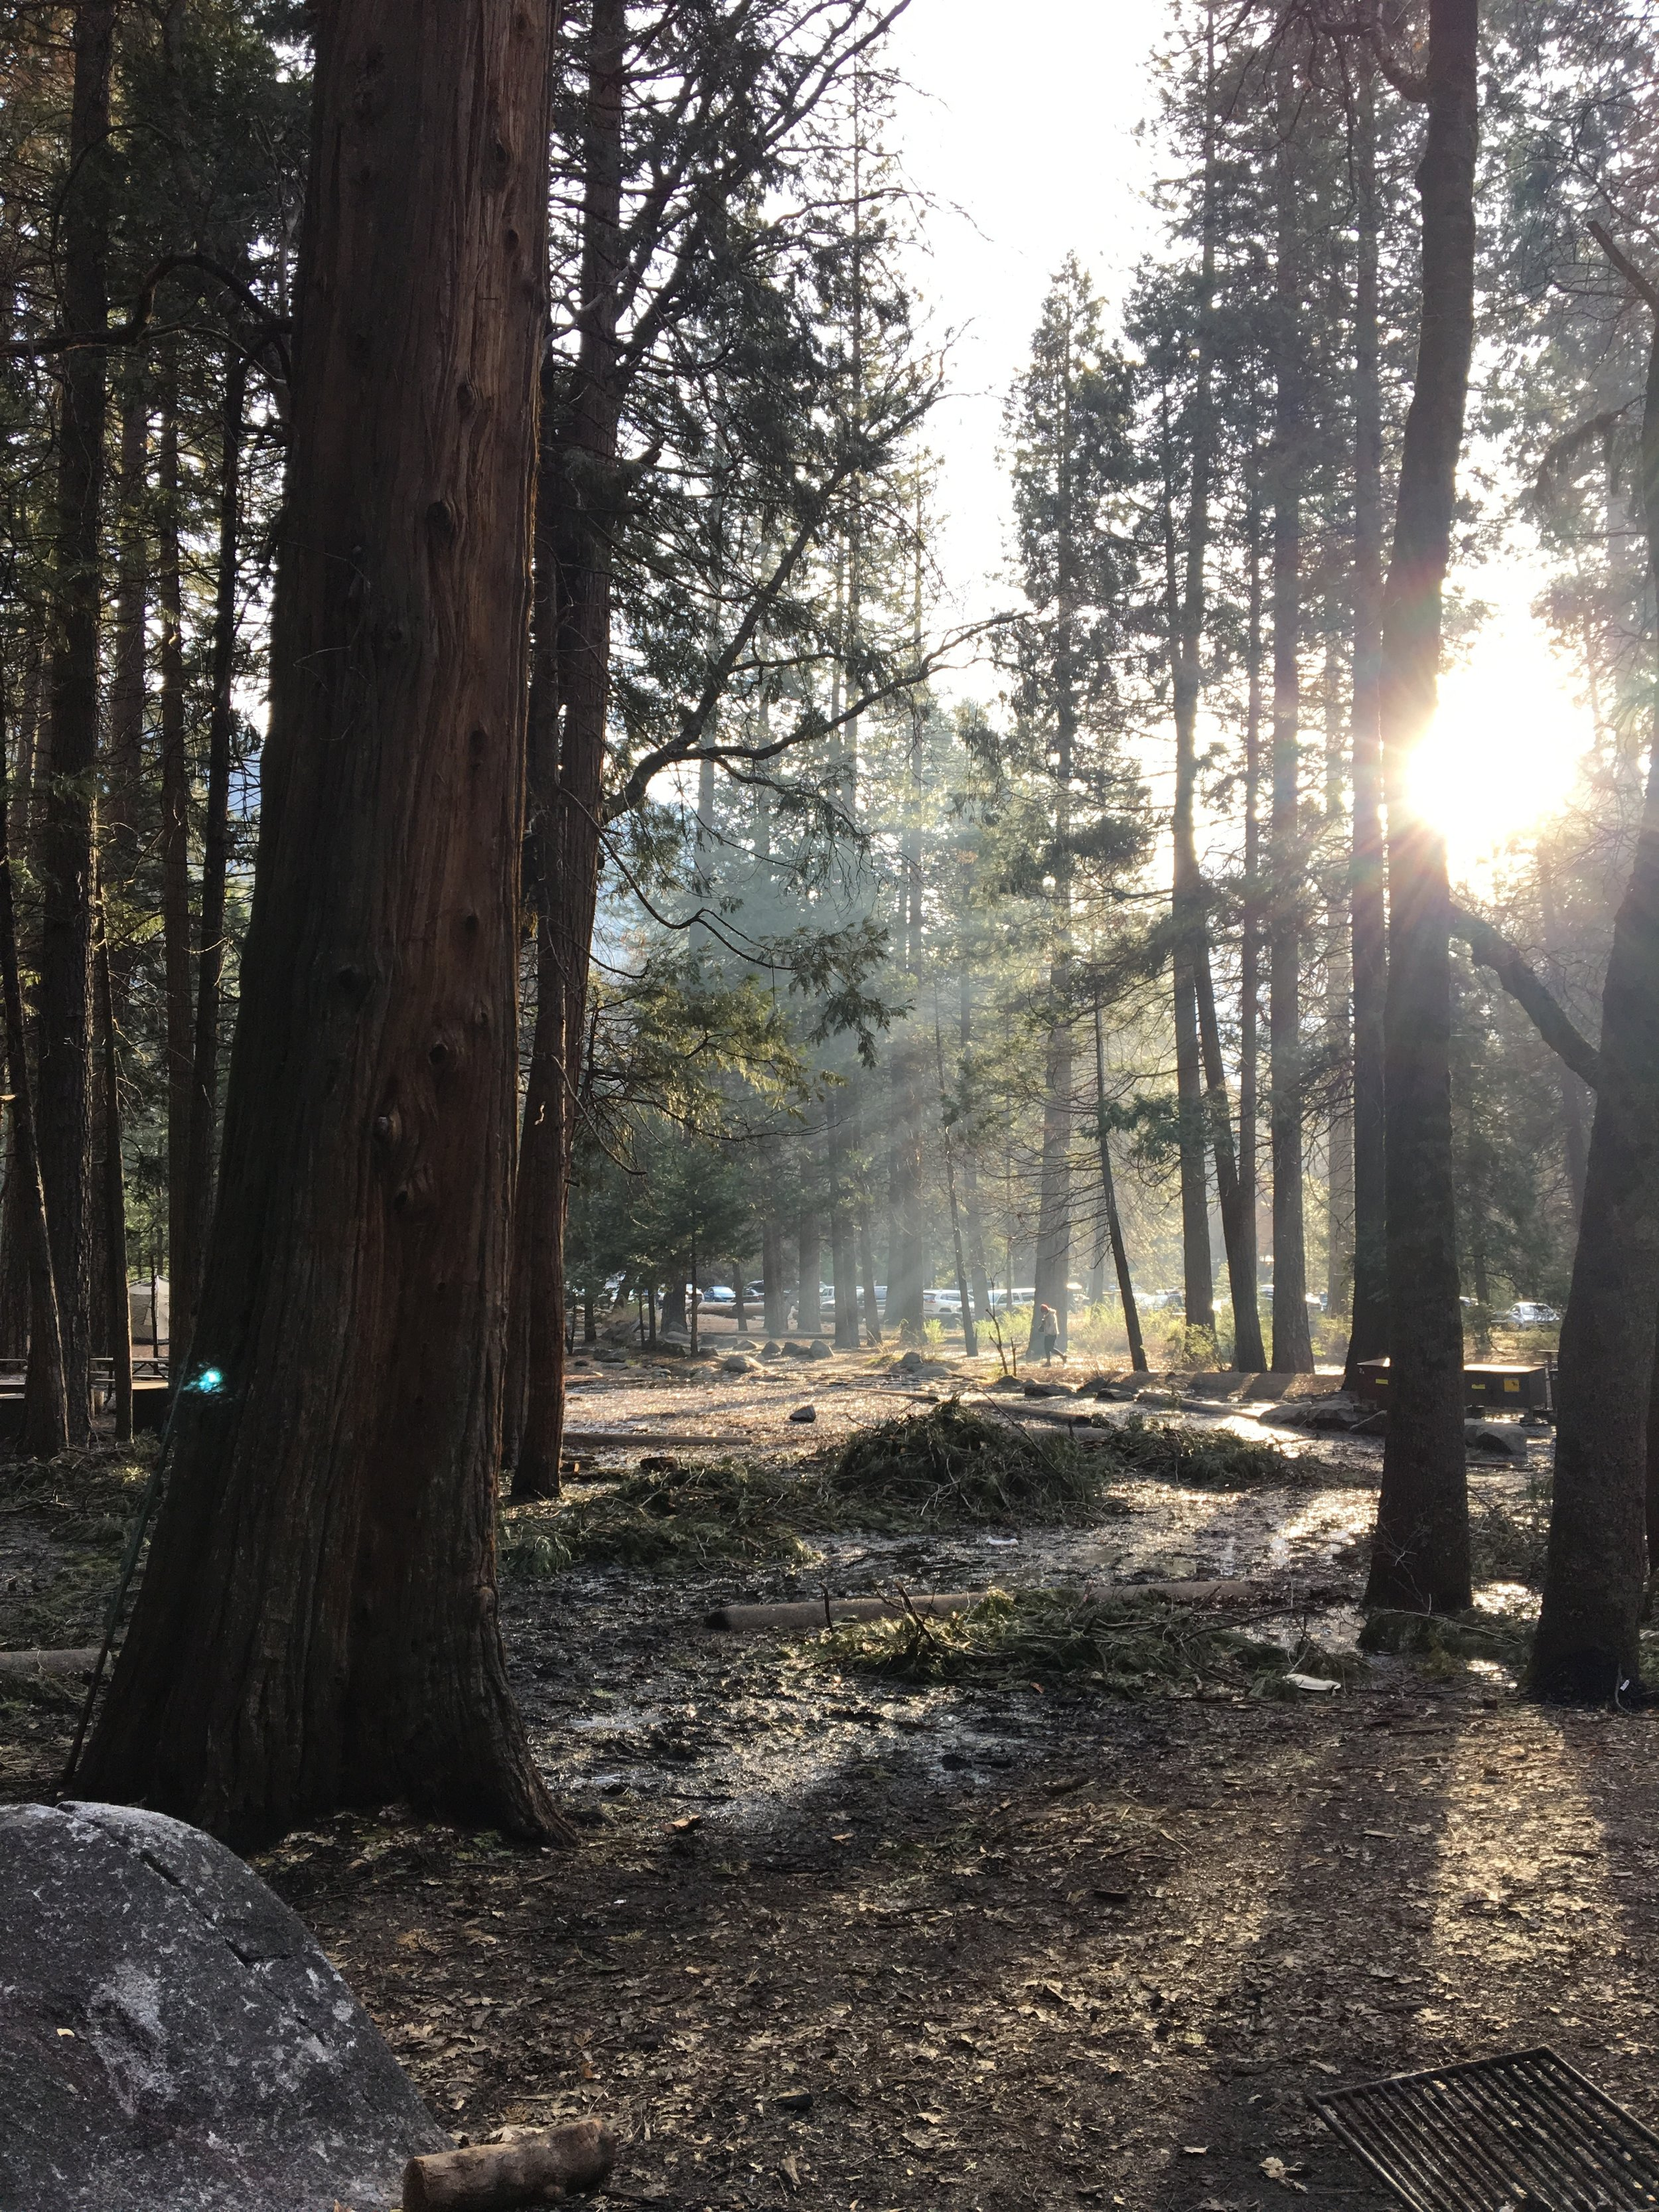 Camp 4 morning views *swoon*